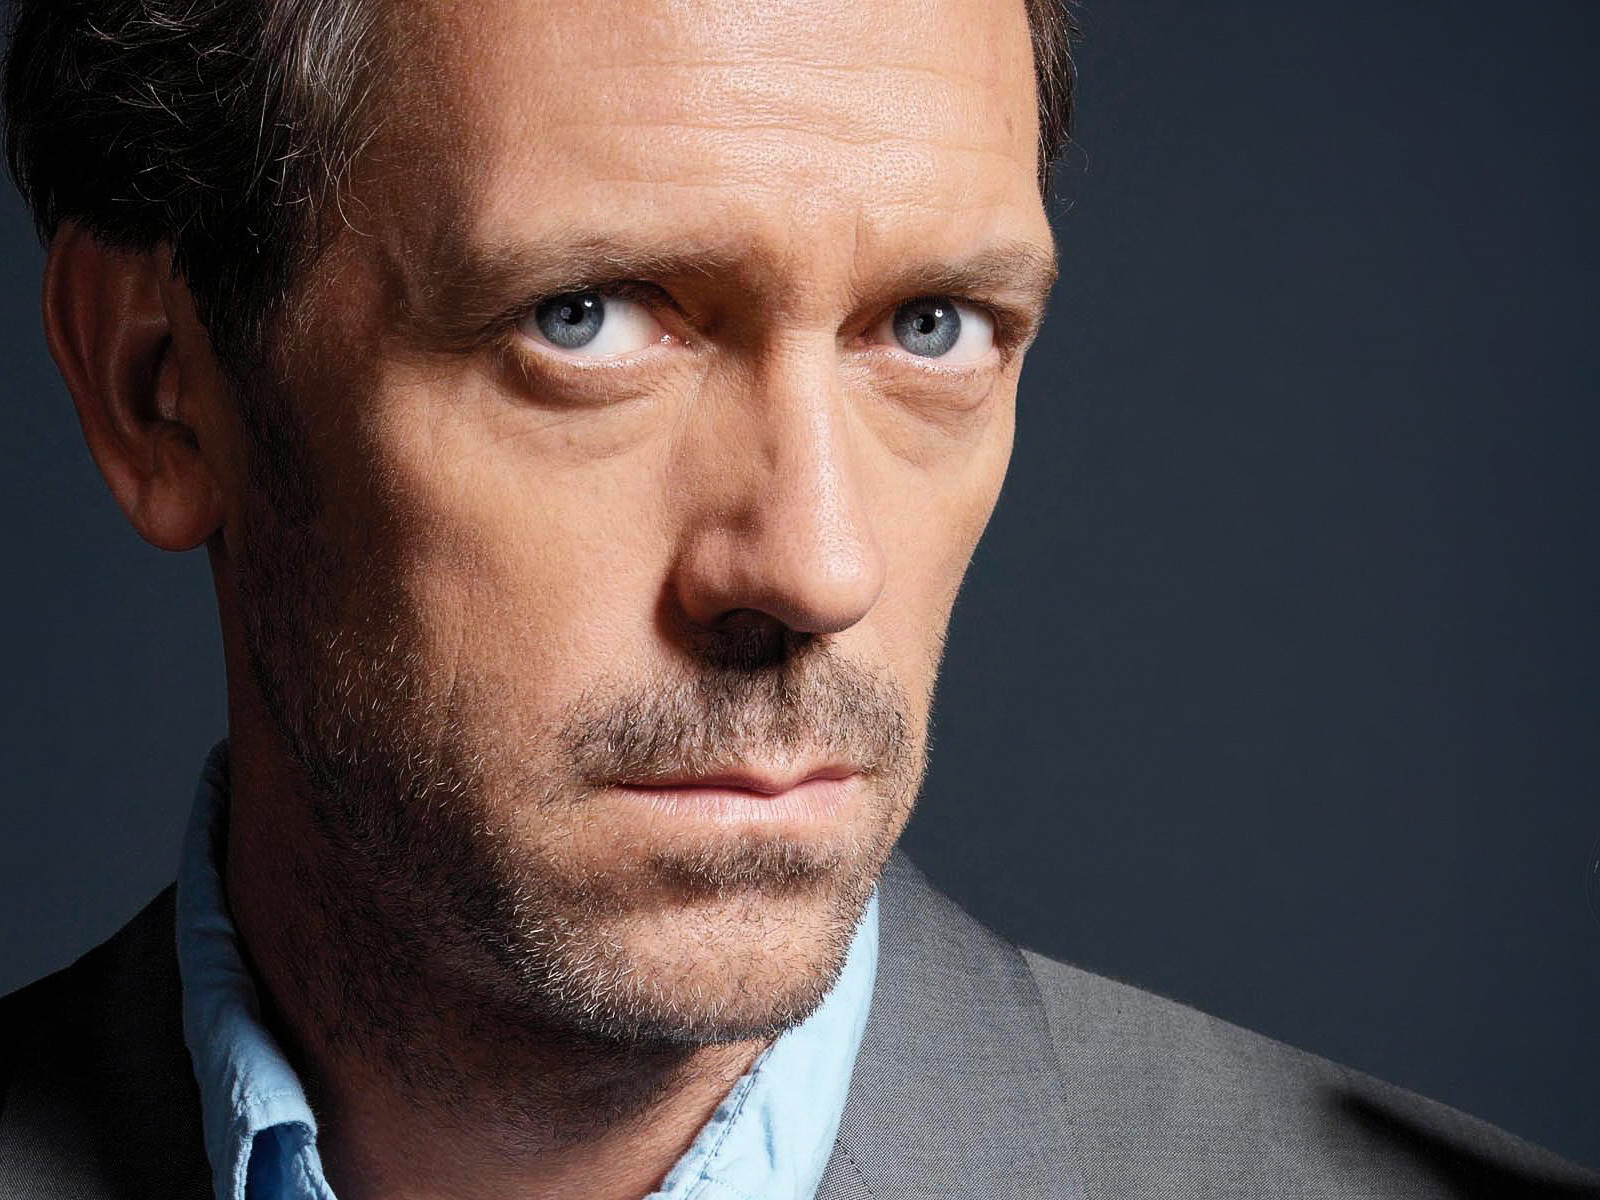 House Dr Gregory House Wallpaper 1395776 Fanpop